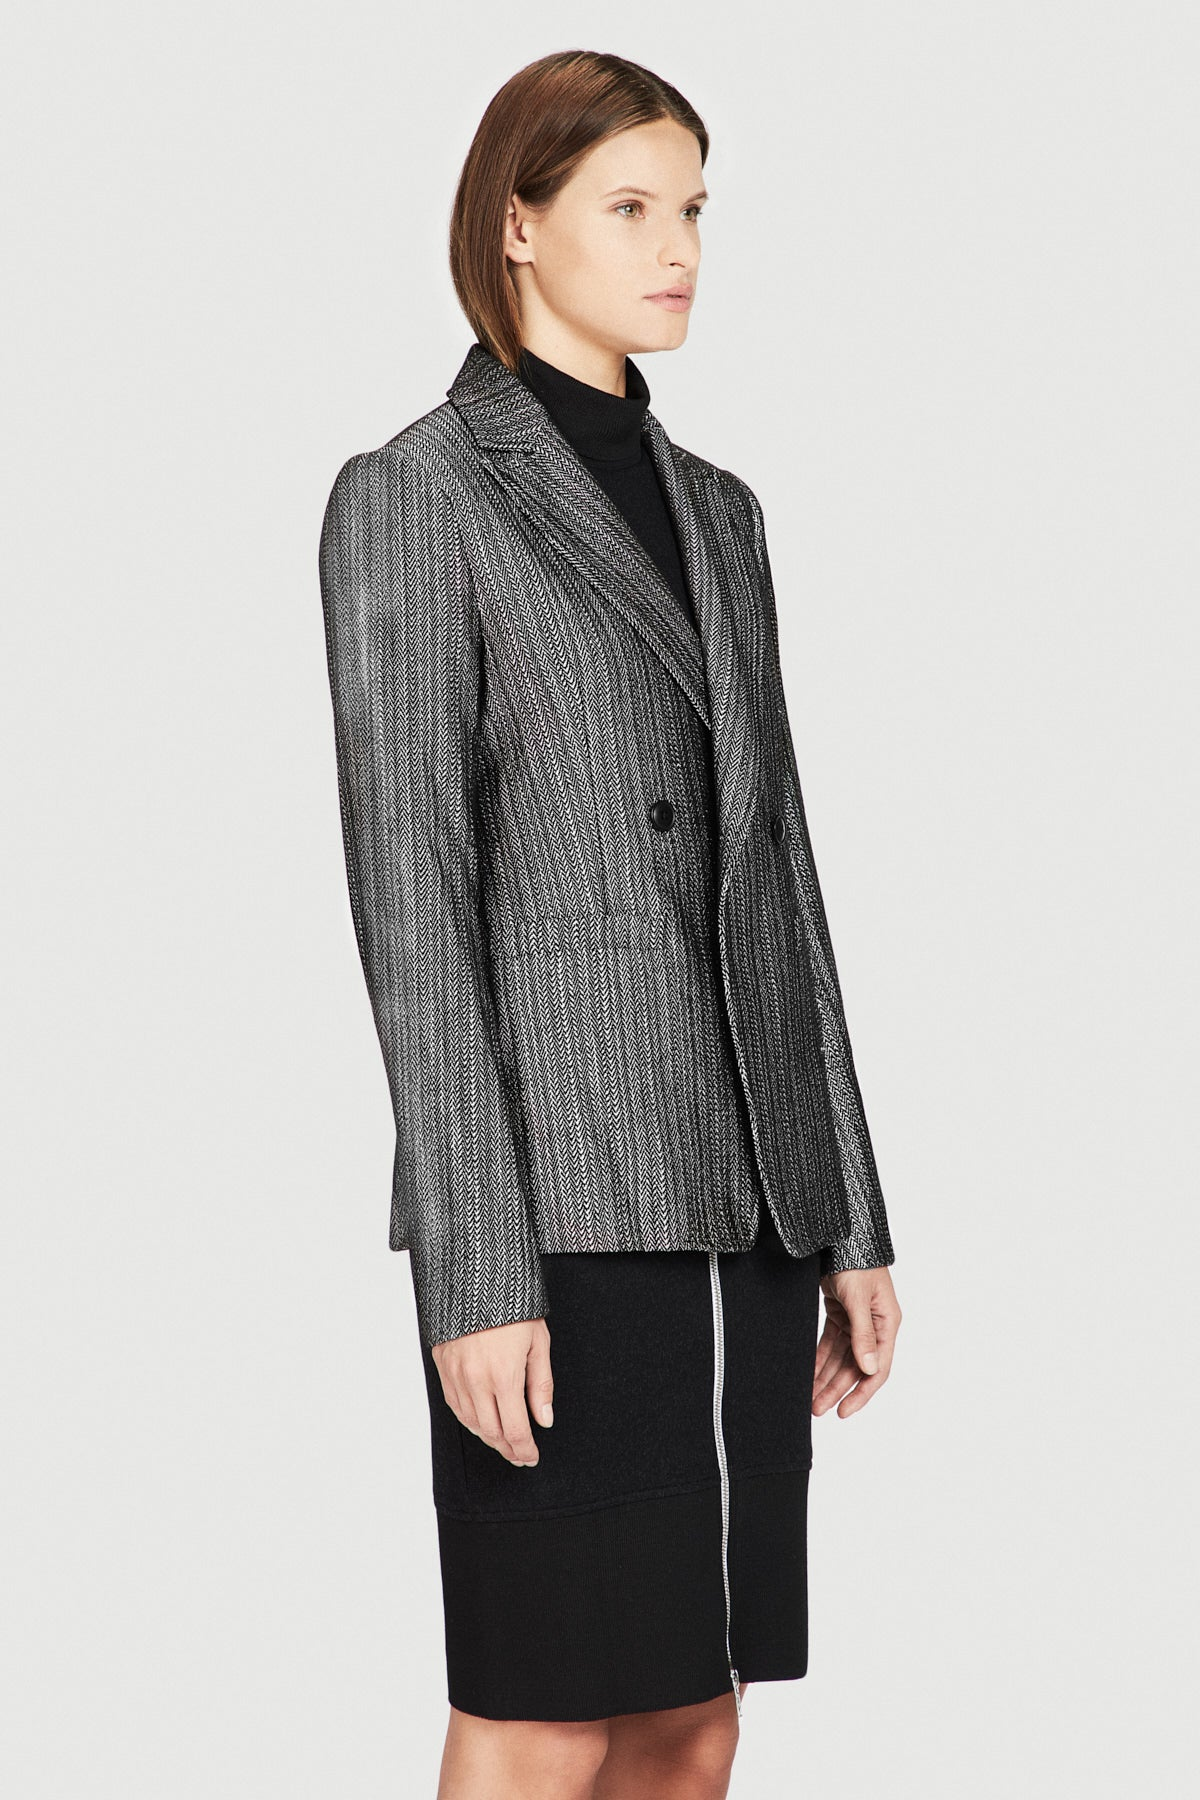 Signature Shrunken Double Breasted Jacket in Silver